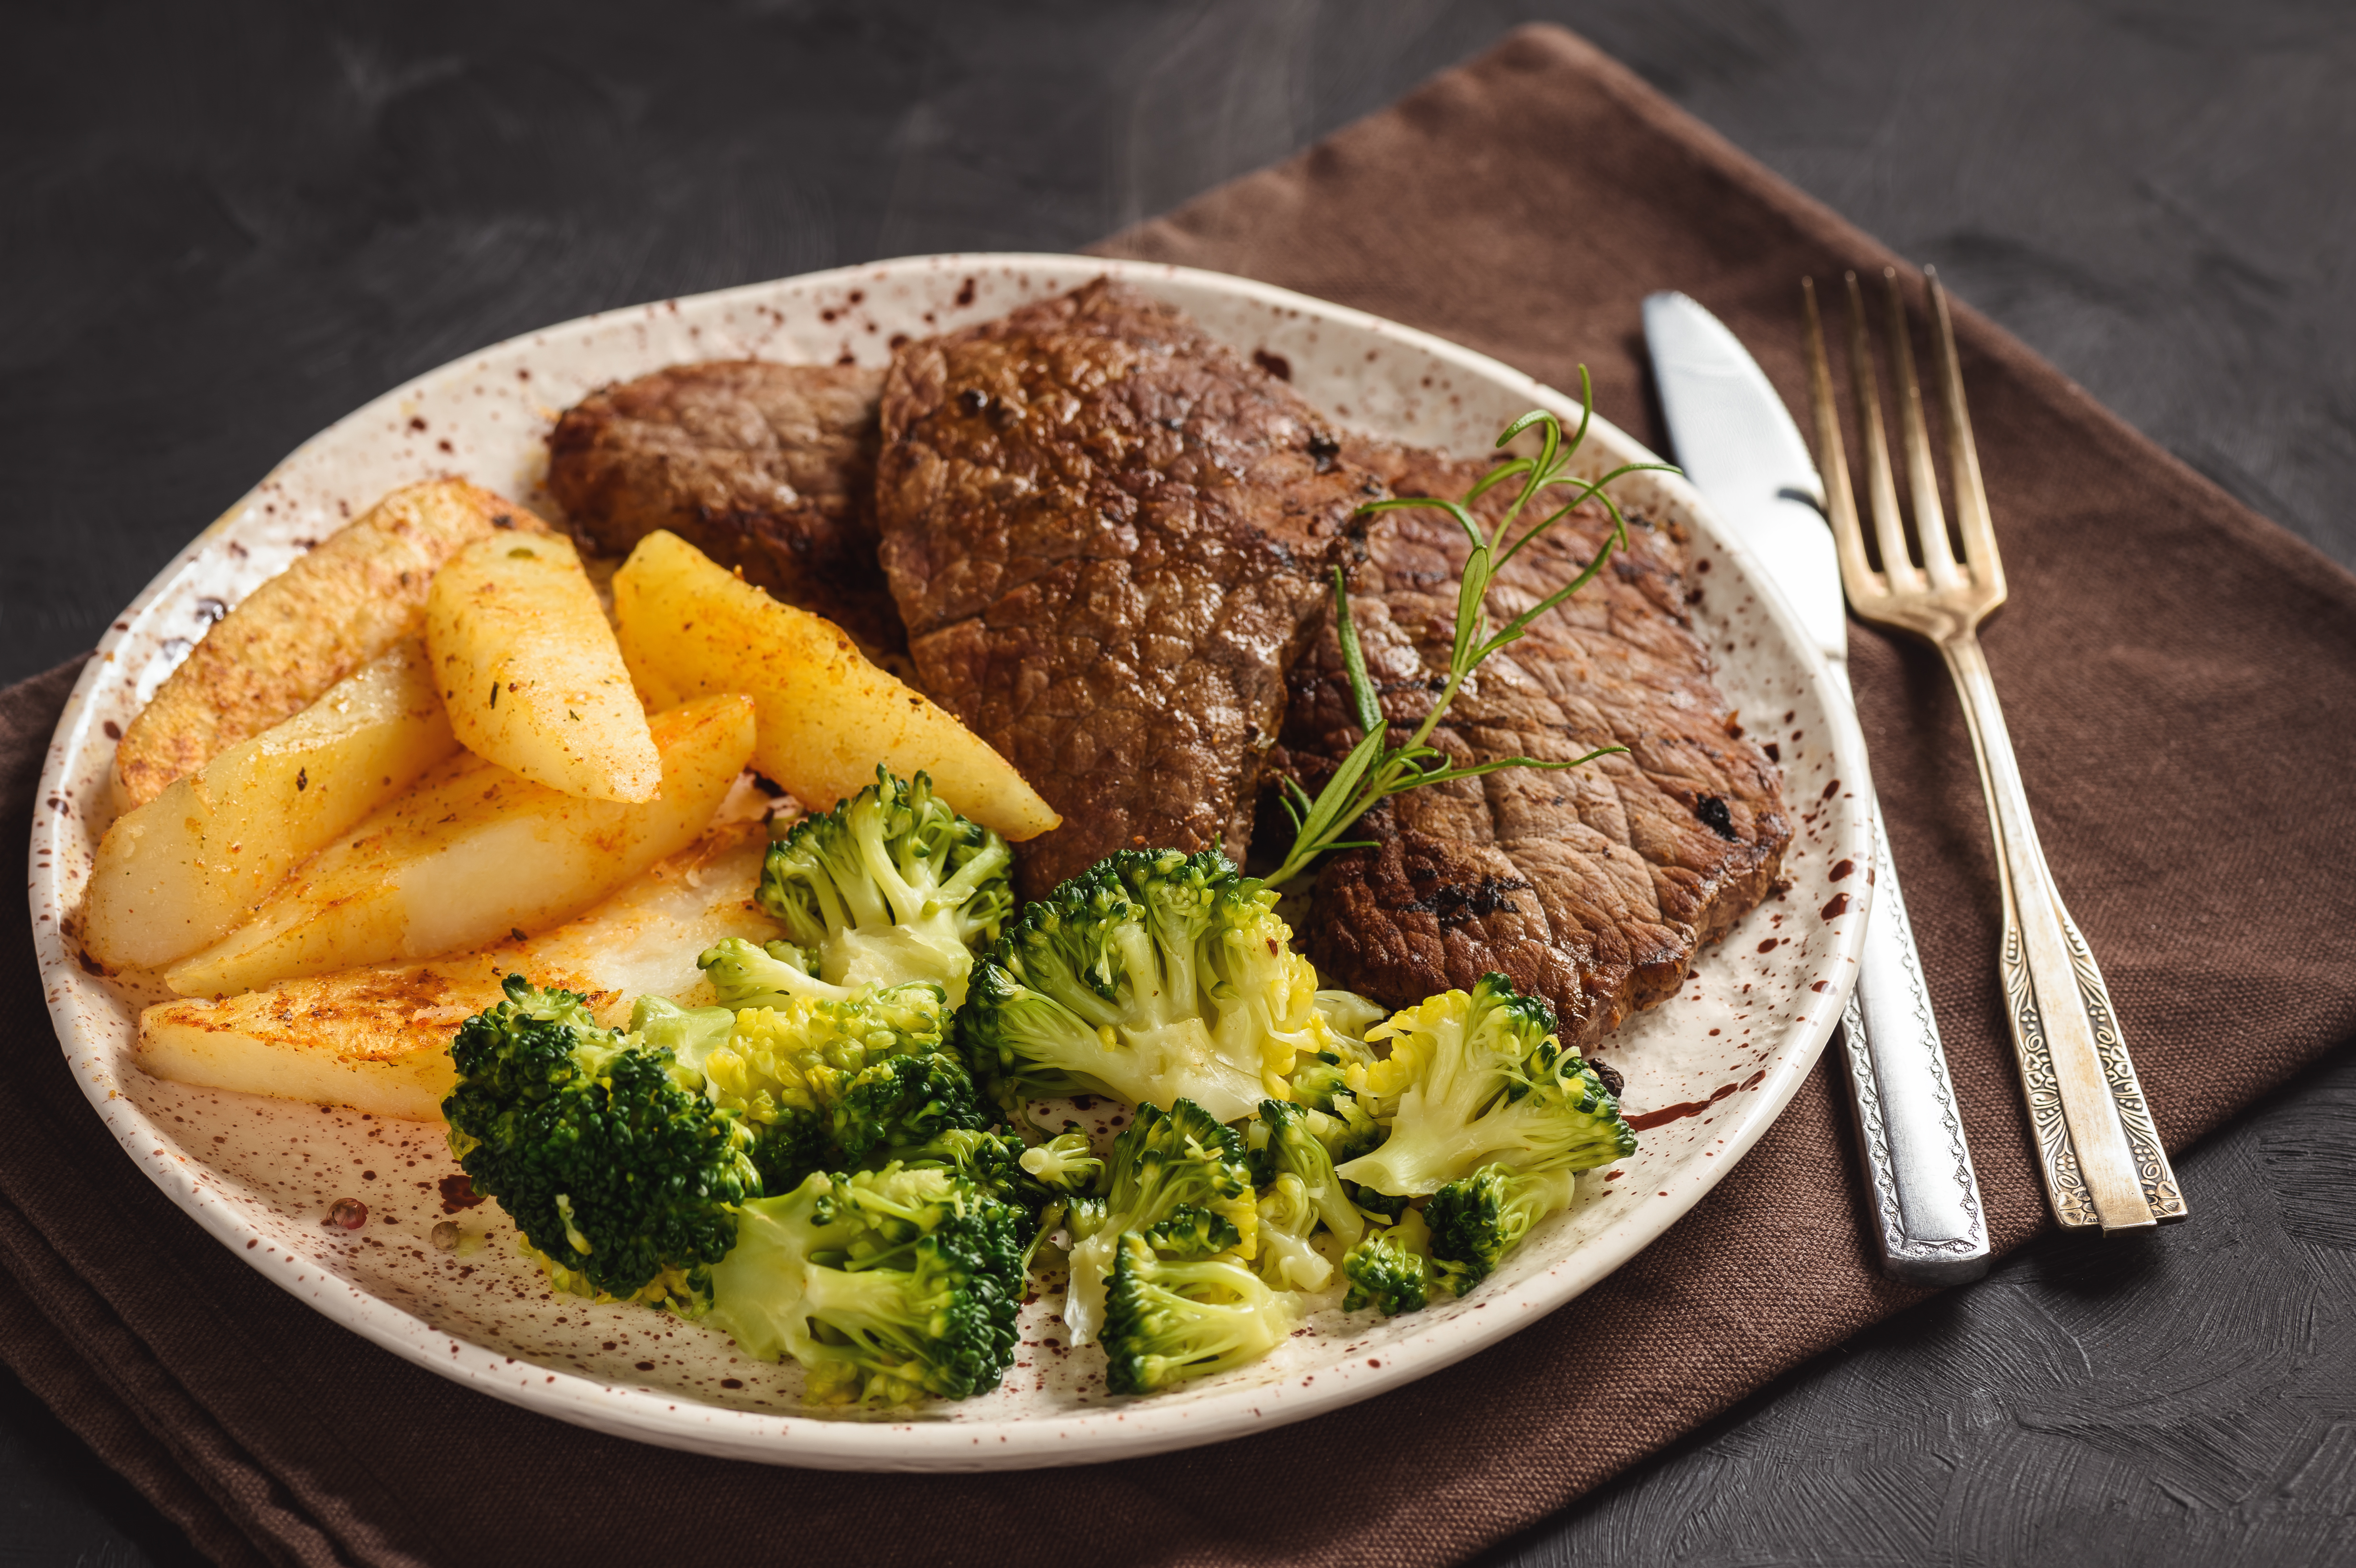 Grilled beefsteack with broccoli and  baked potatoes.